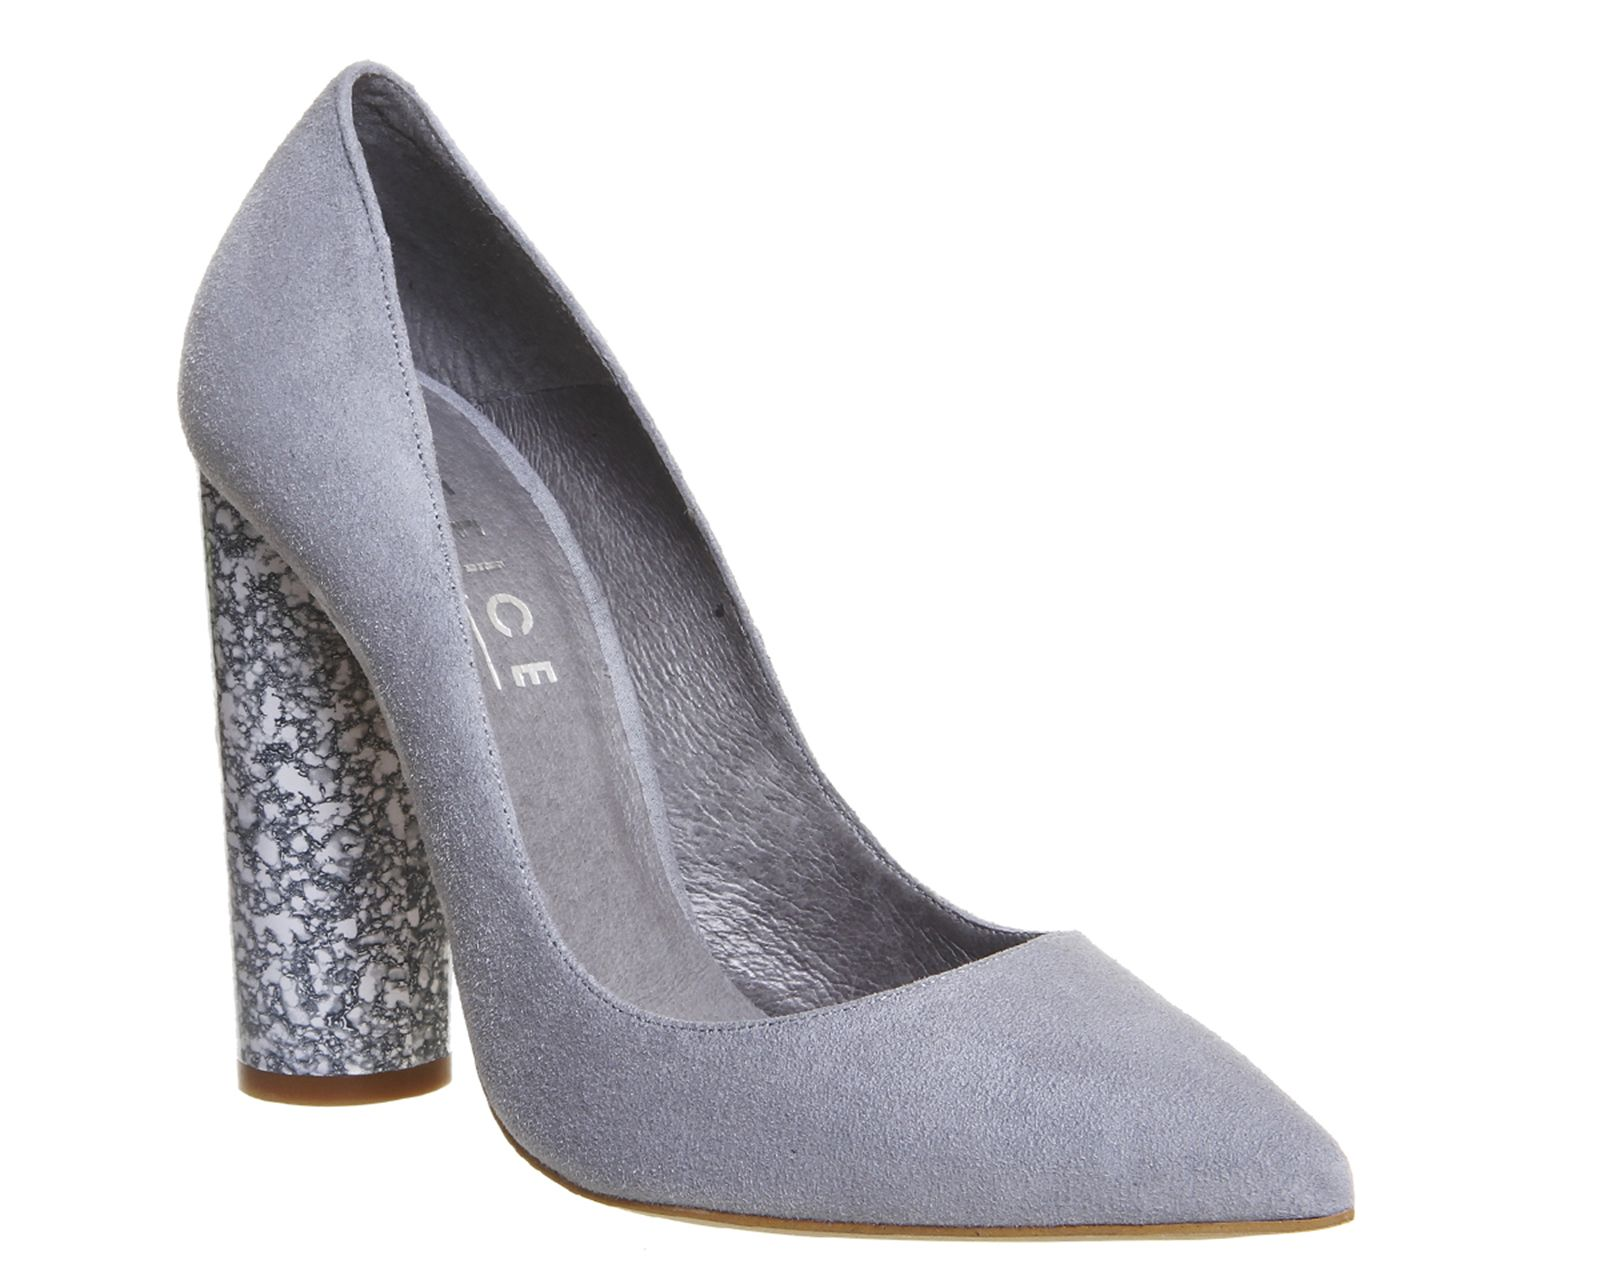 09b2bd3cb38 Buy Grey Suede Marble Heel Effect Office Amaze Cylindrical Heeled Courts  from OFFICE.co.uk.